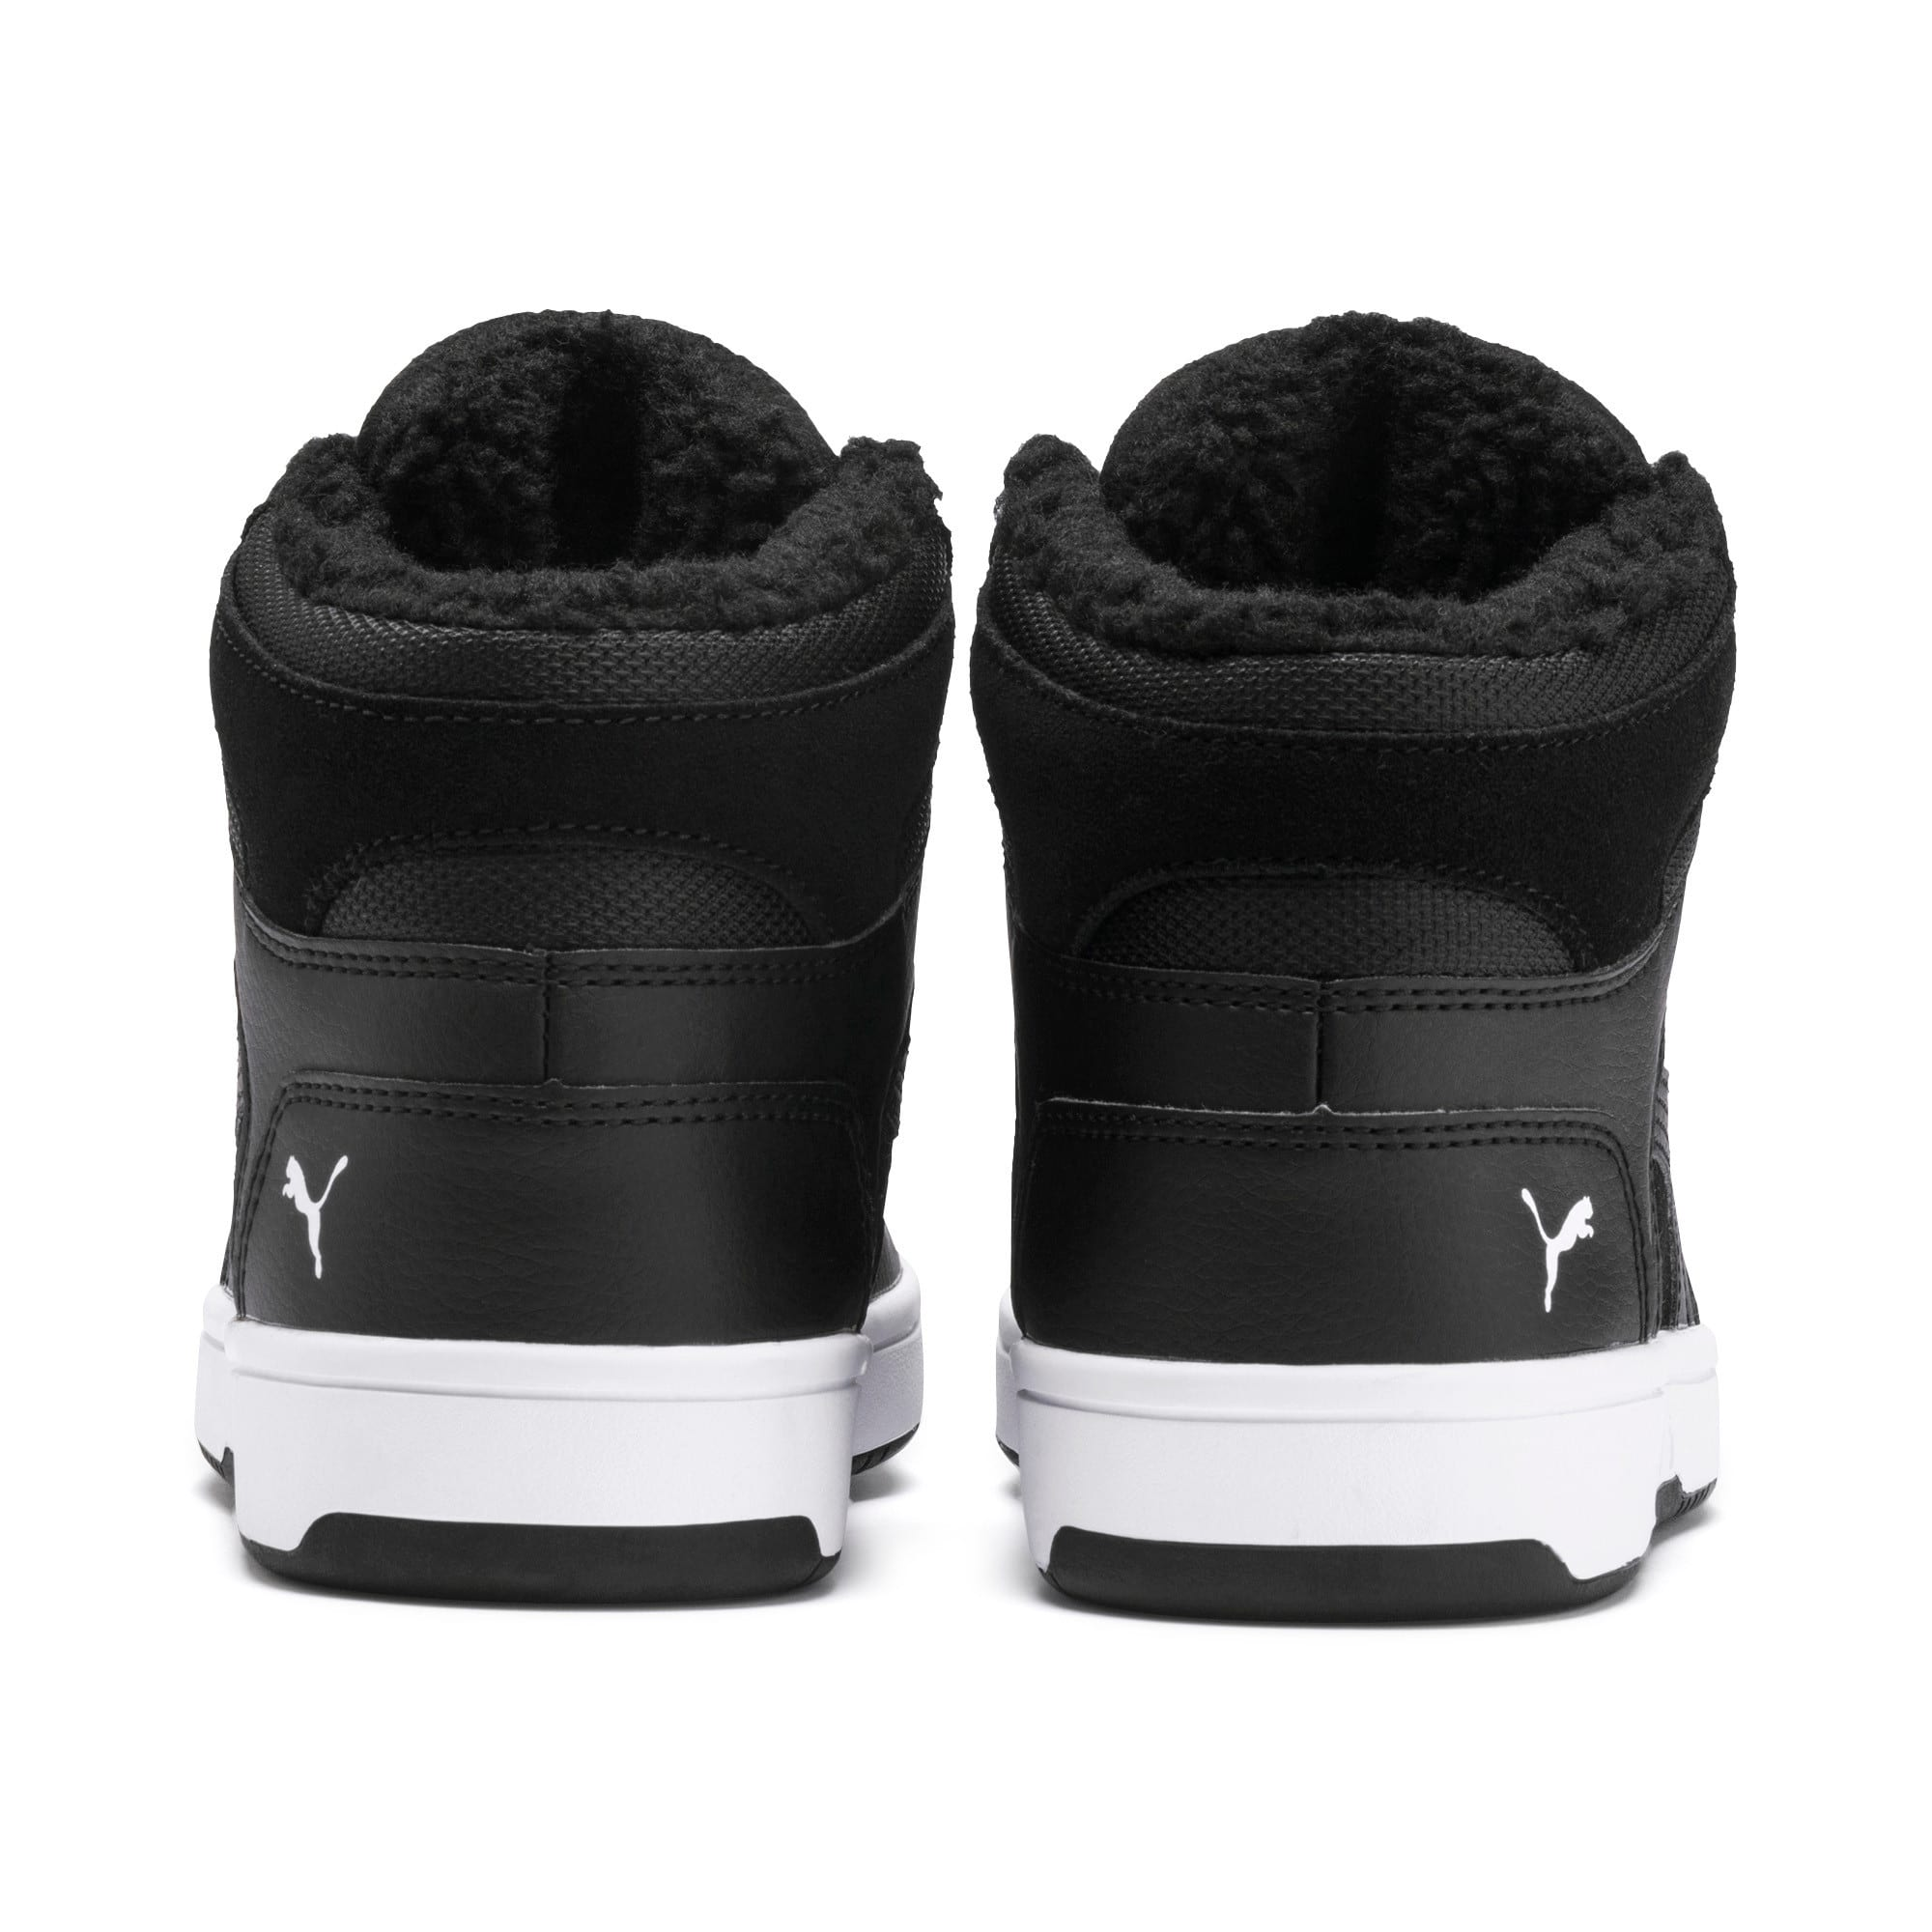 Thumbnail 3 of Rebound Lay-Up Fur SD Youth Sneaker, Puma Black-Puma White, medium